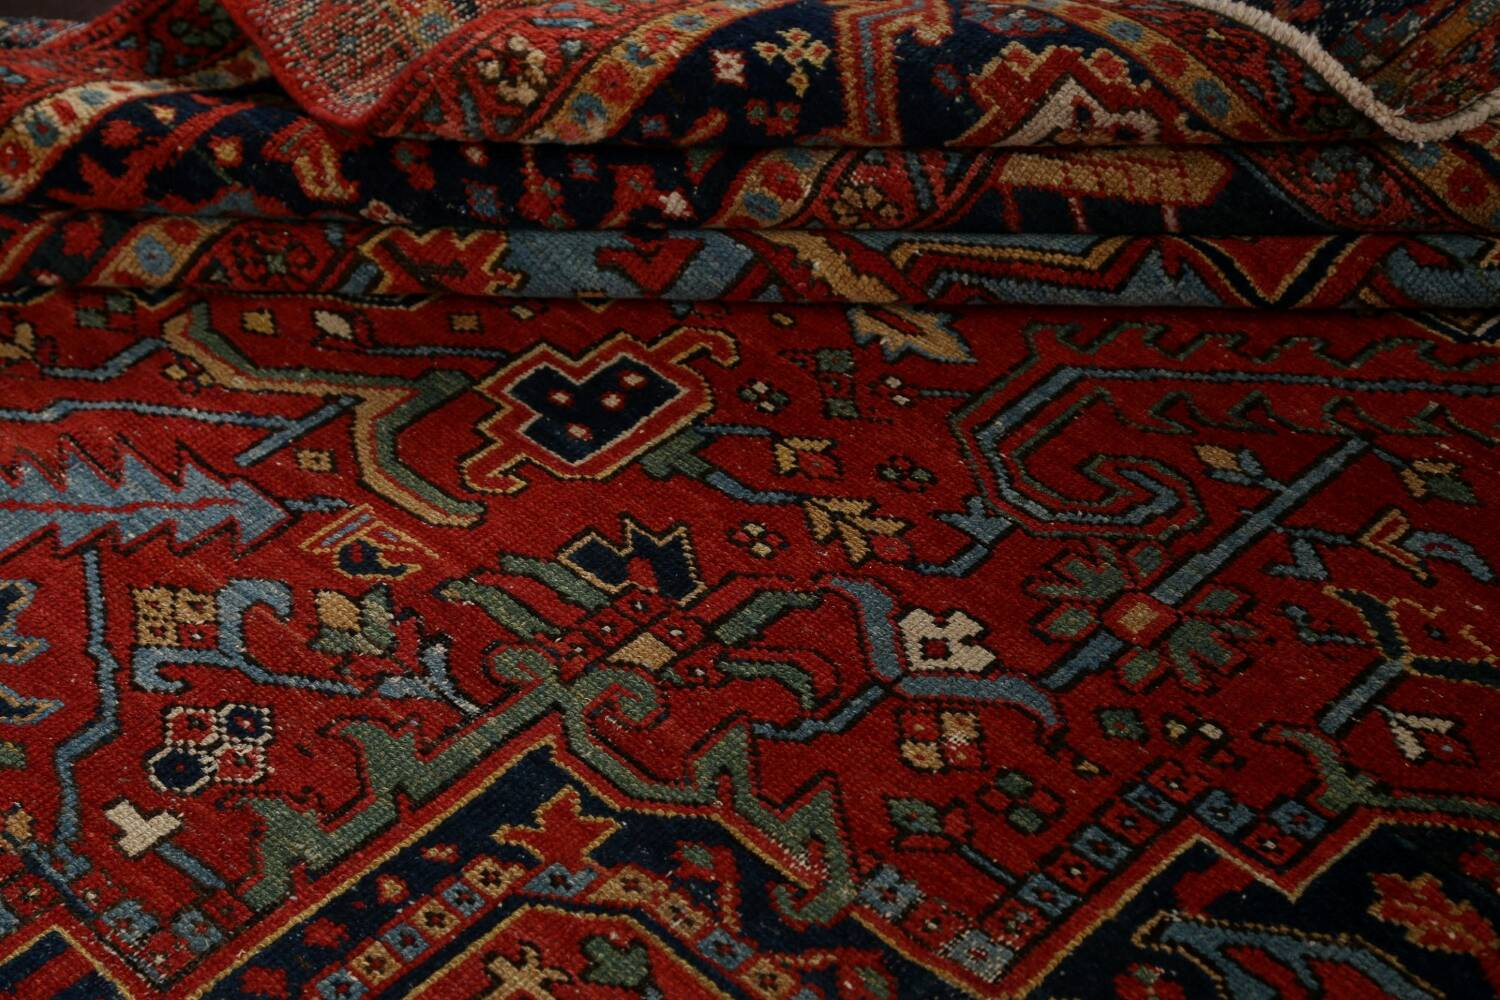 Pre-1900 Antique Vegetable Dye Heriz Serapi Persian Rug 12x14 image 18